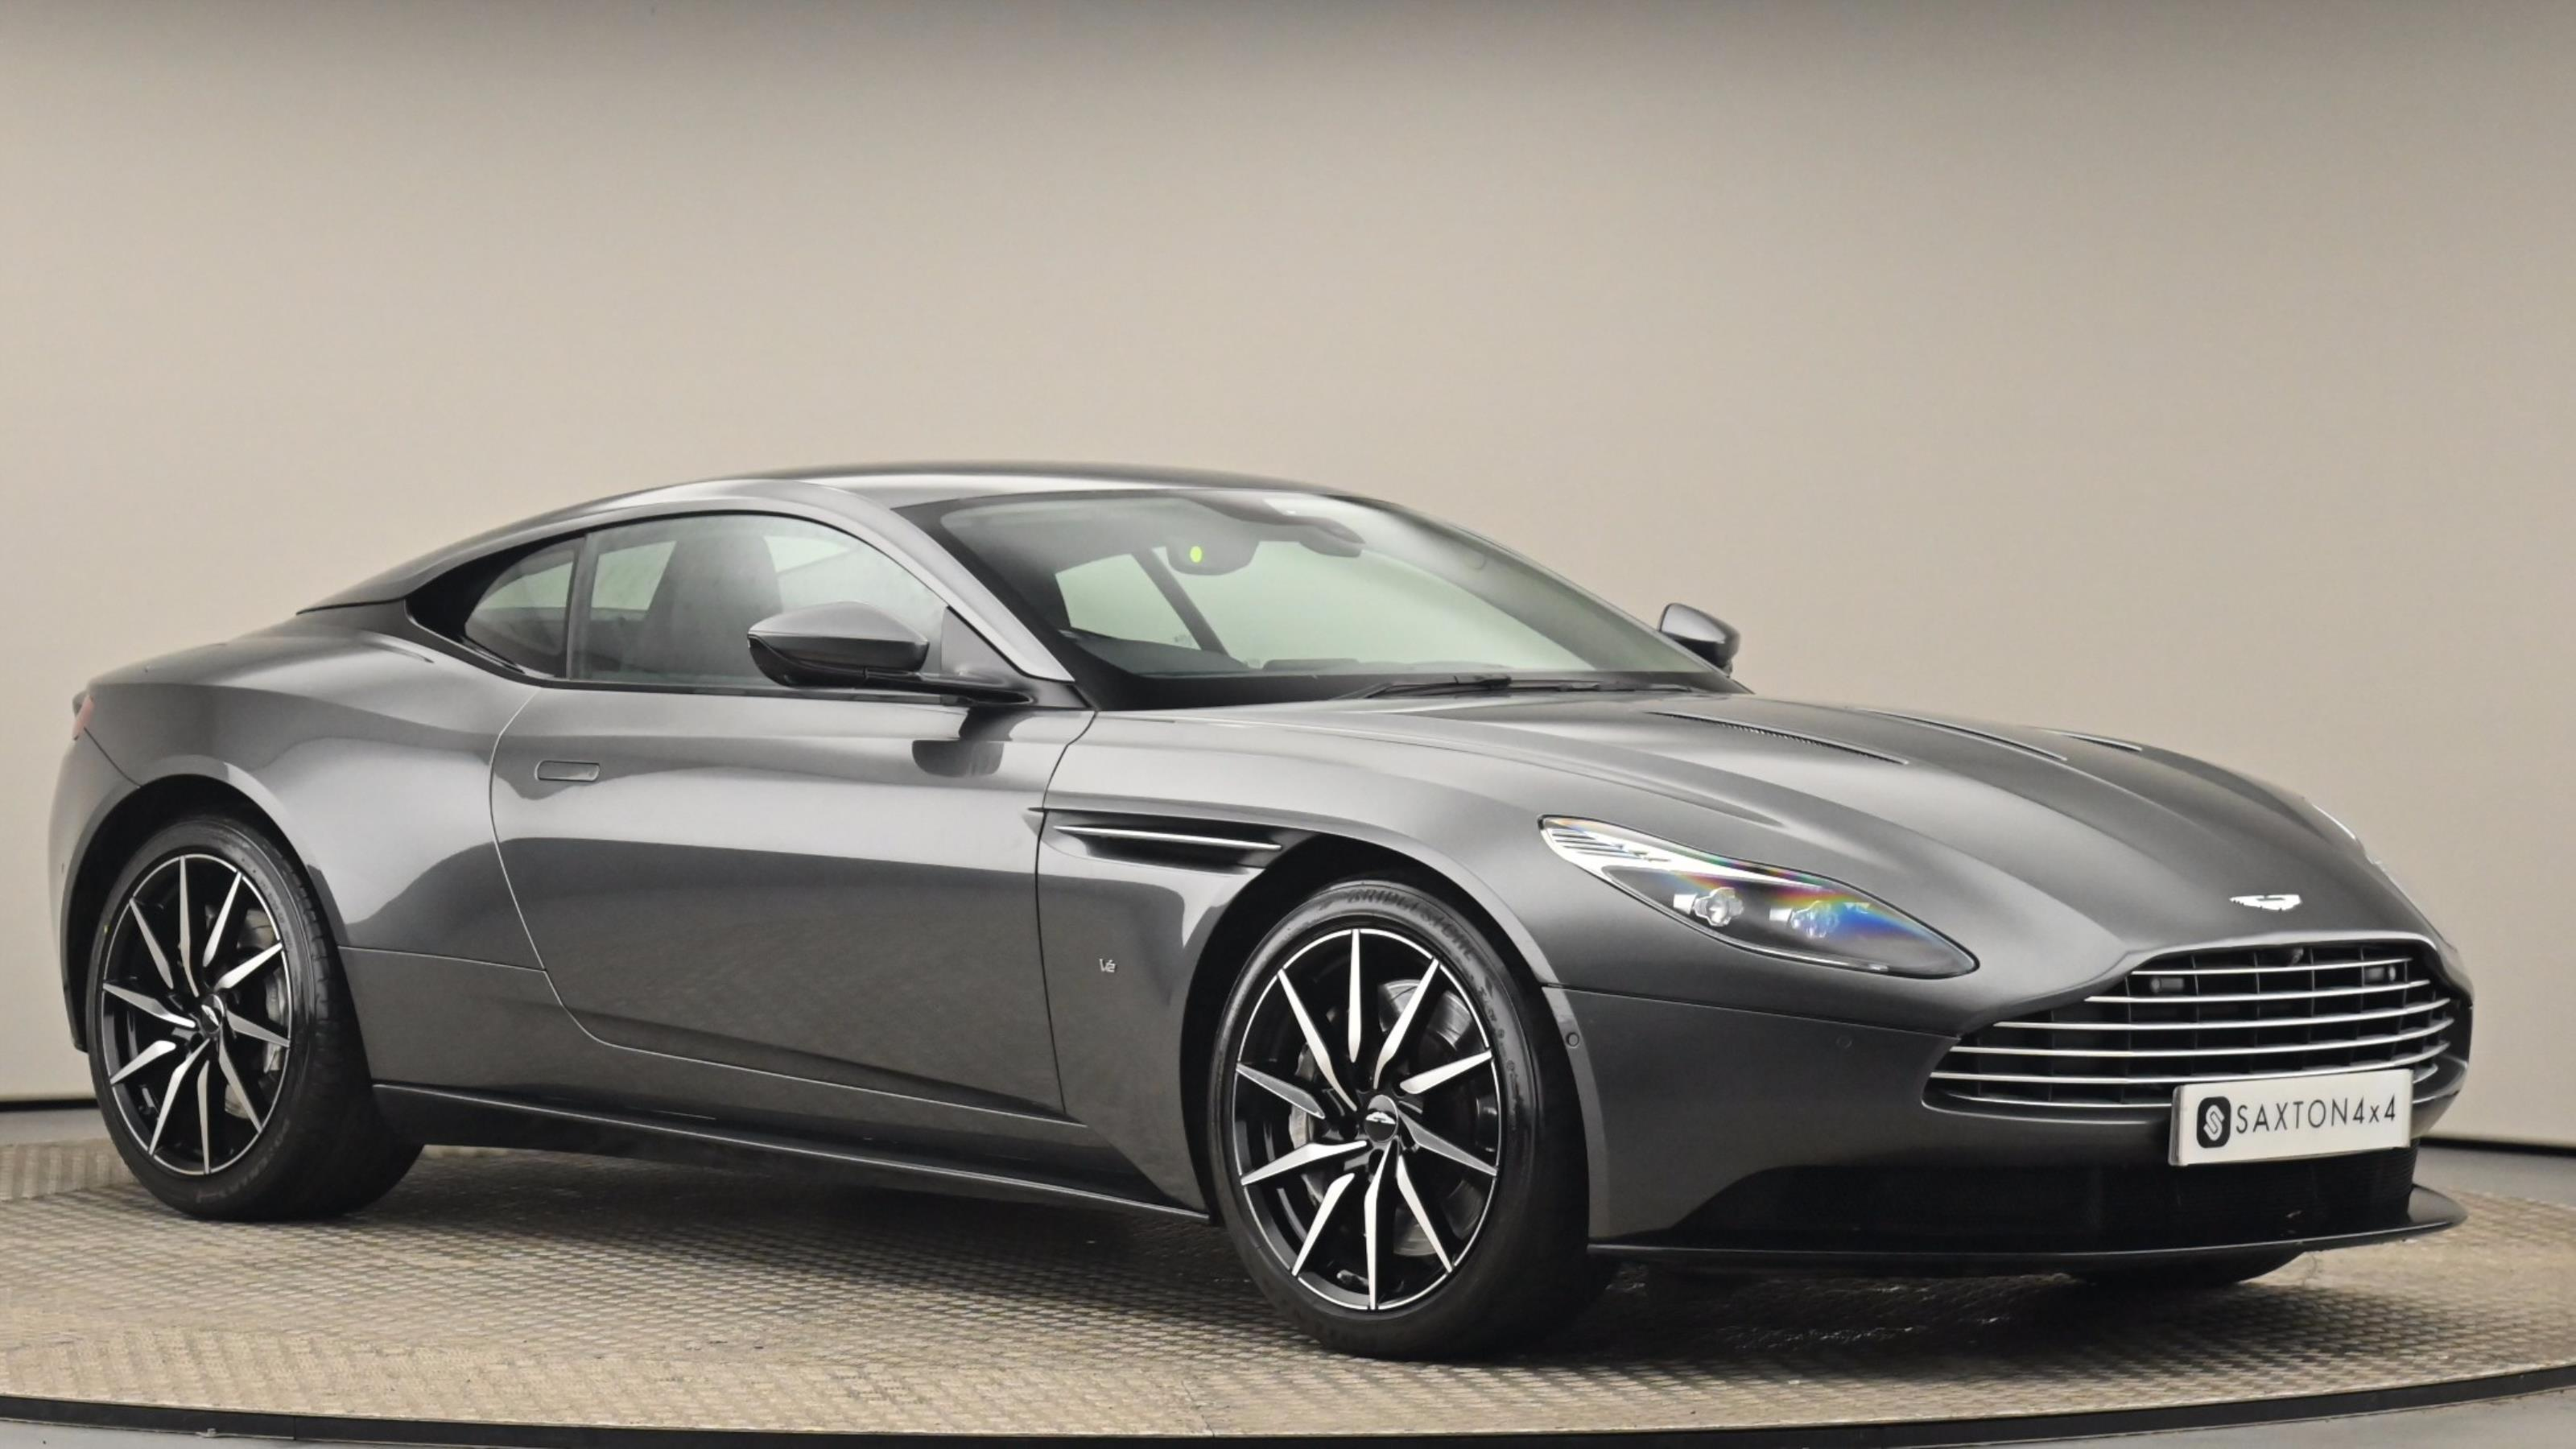 Used 2017 Aston Martin DB11 V12 Launch Edition 2dr Touchtronic Auto at Saxton4x4